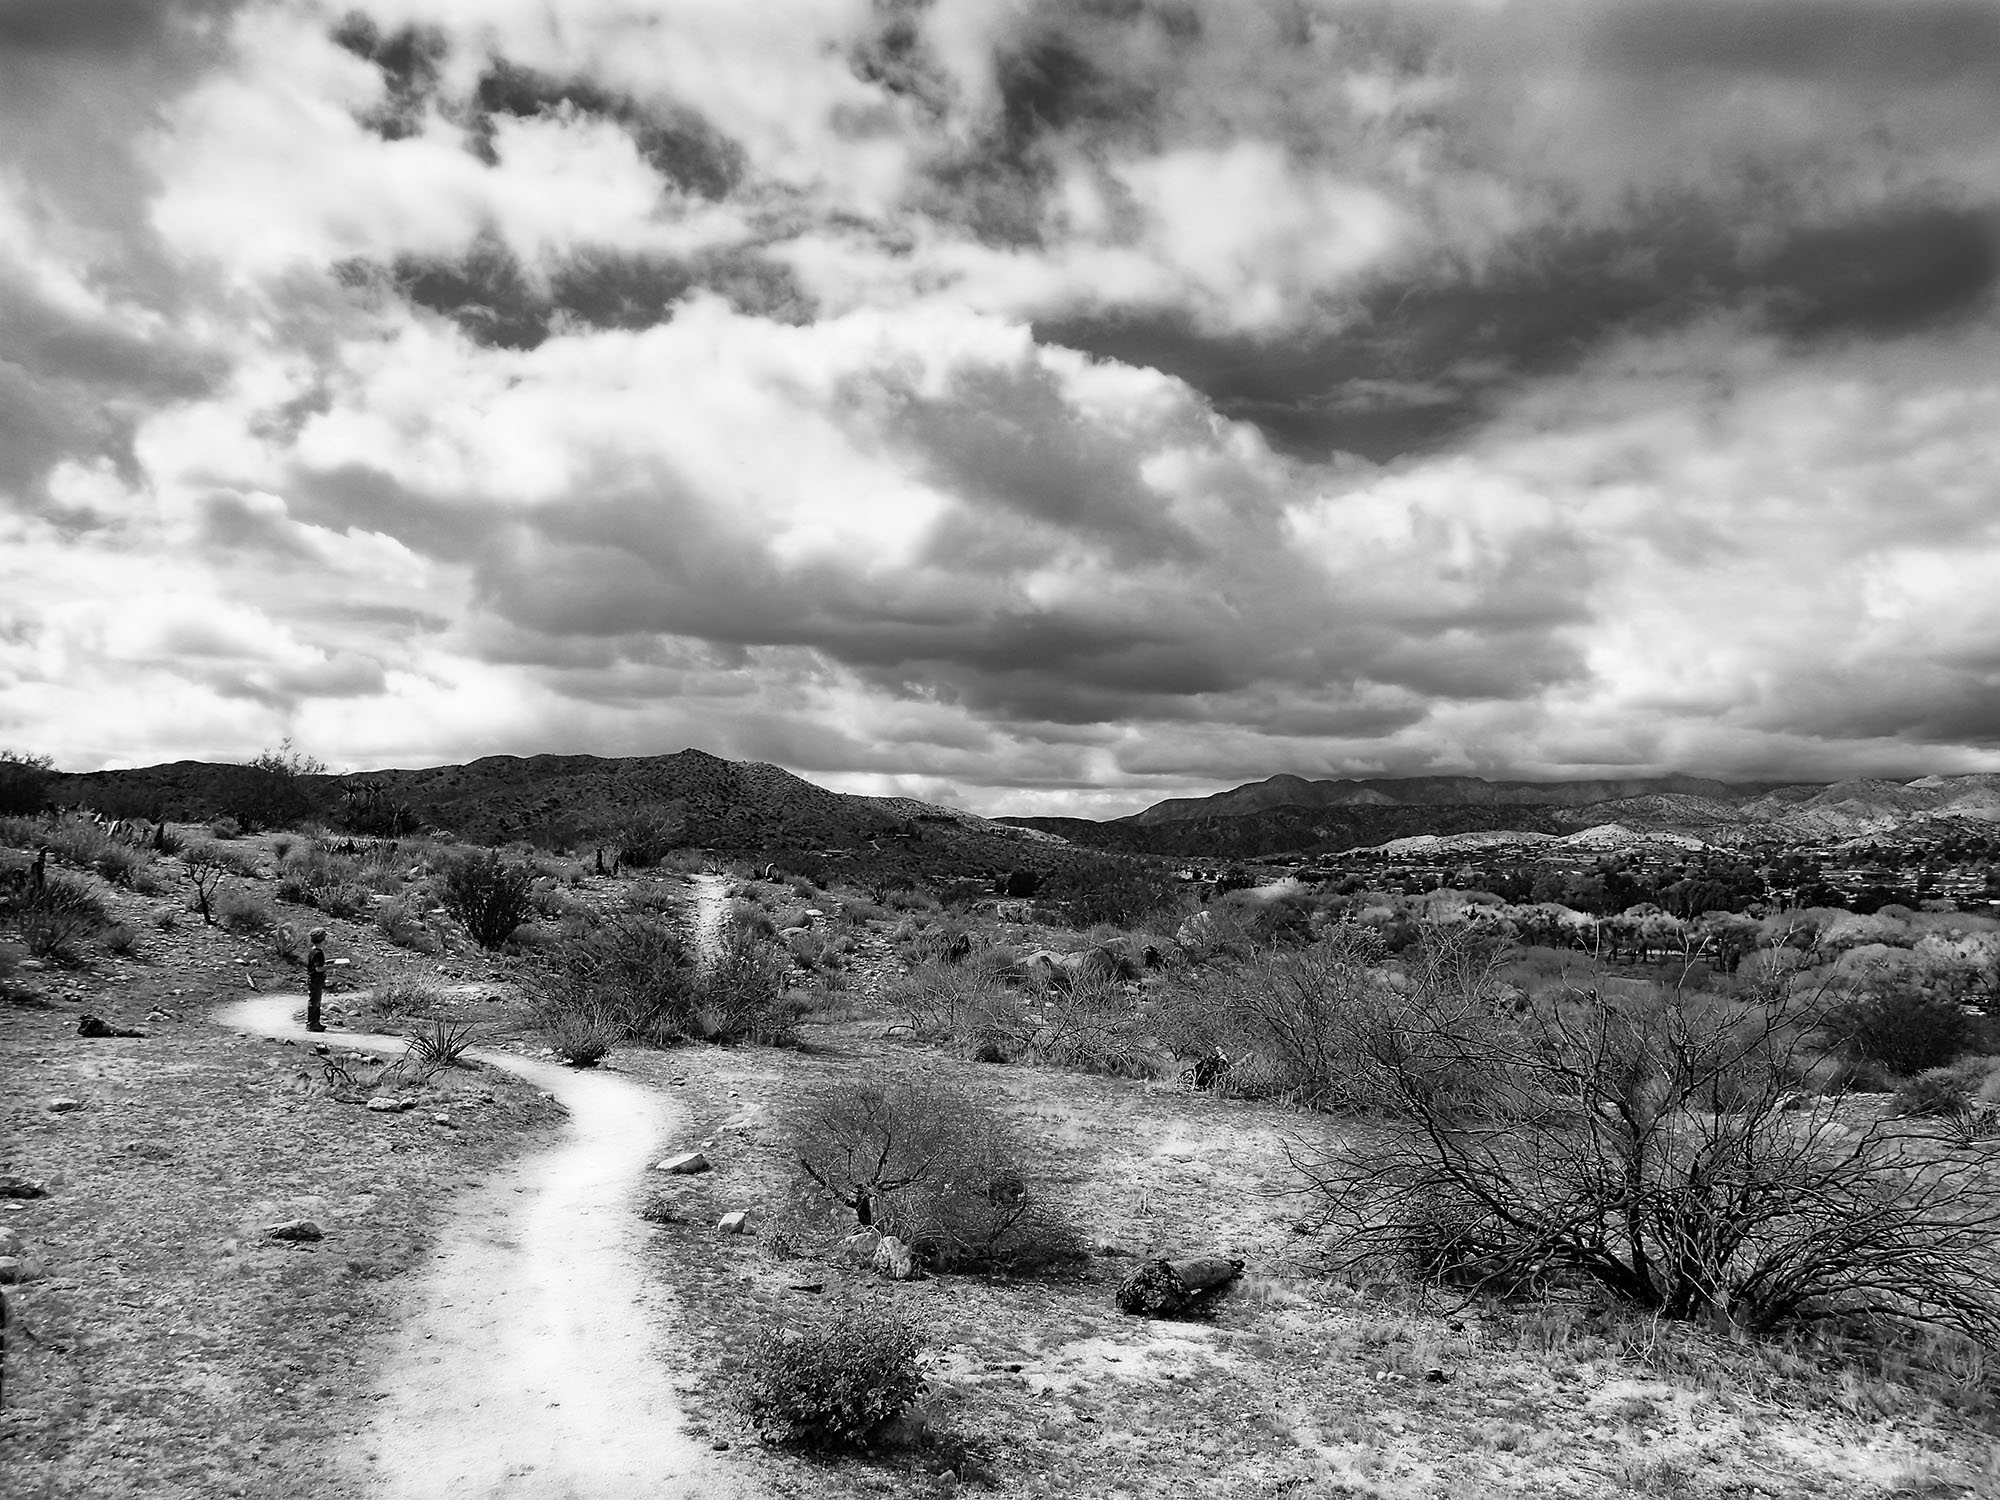 Stormy Day on Morongo Valley